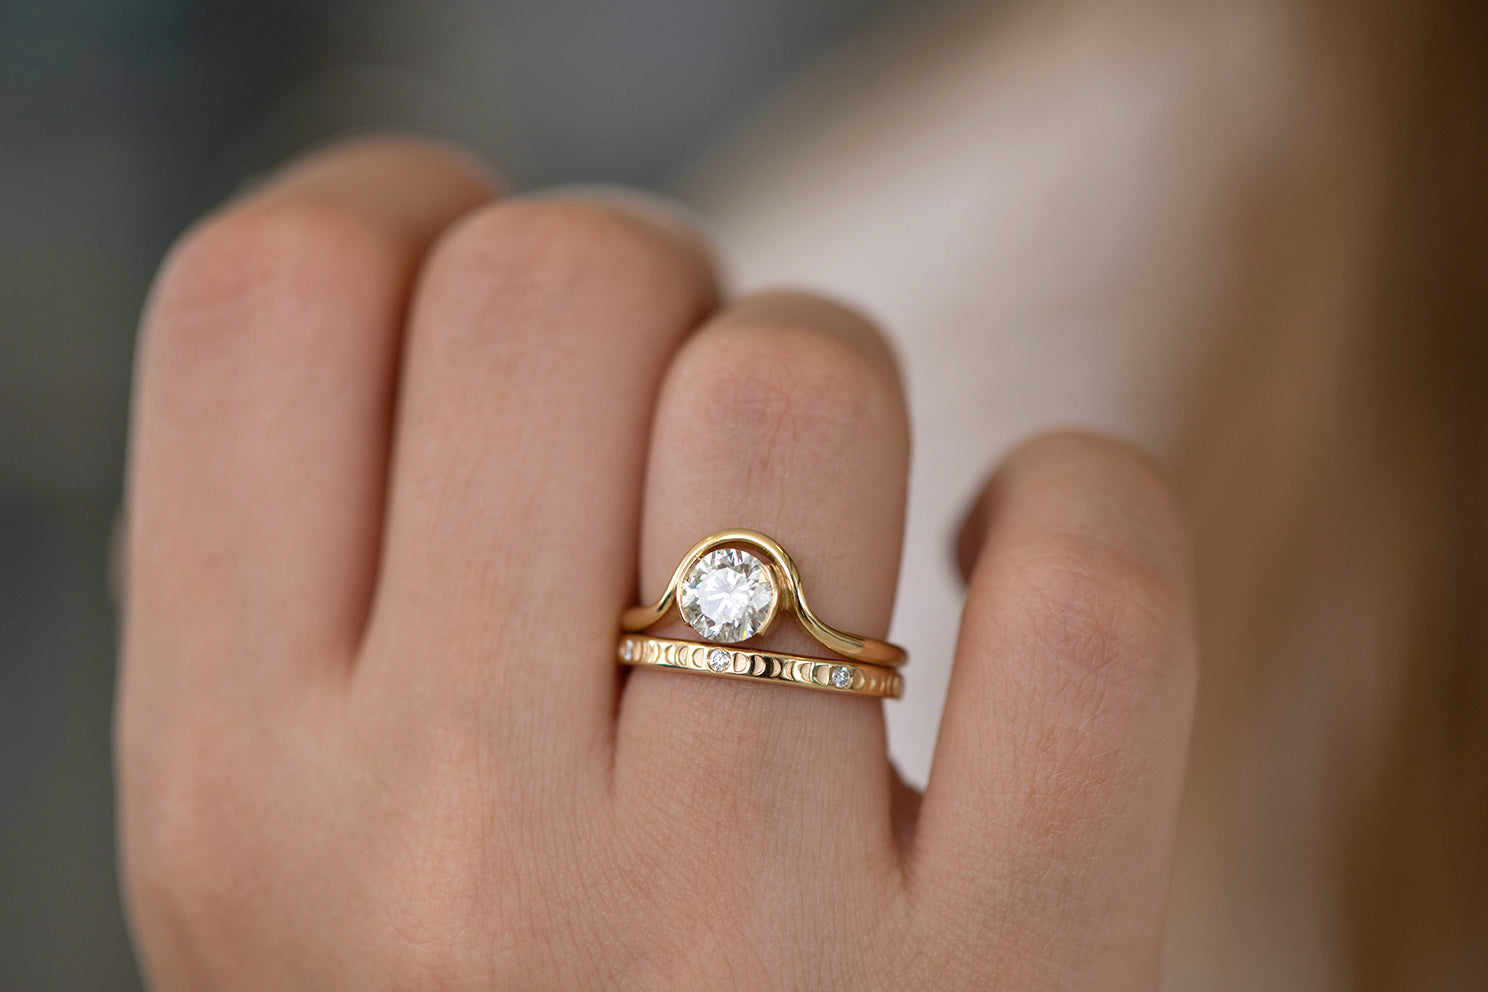 Moon Phase Ring with Full Moon Diamonds - Thin on hand in set side angle